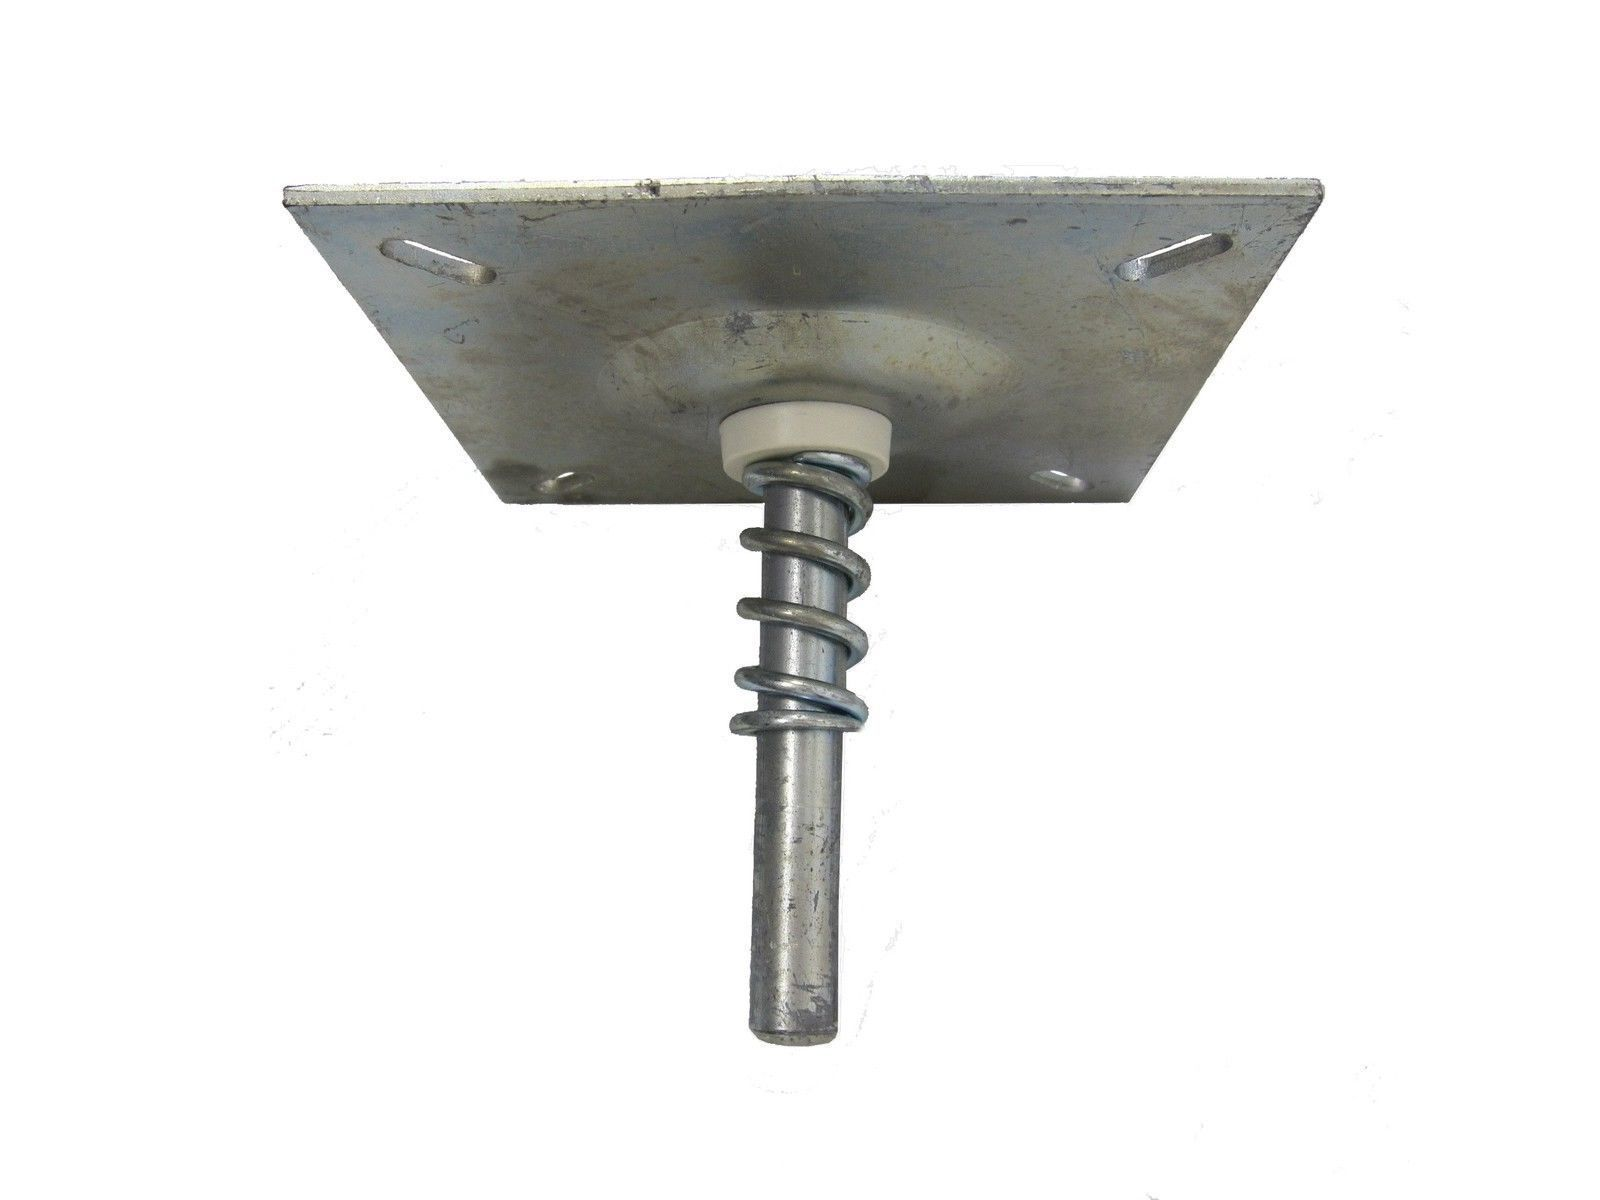 Pin Boat Seat Mount with Spring Skin 2-3//4 Inches Zinc Plated Steel New